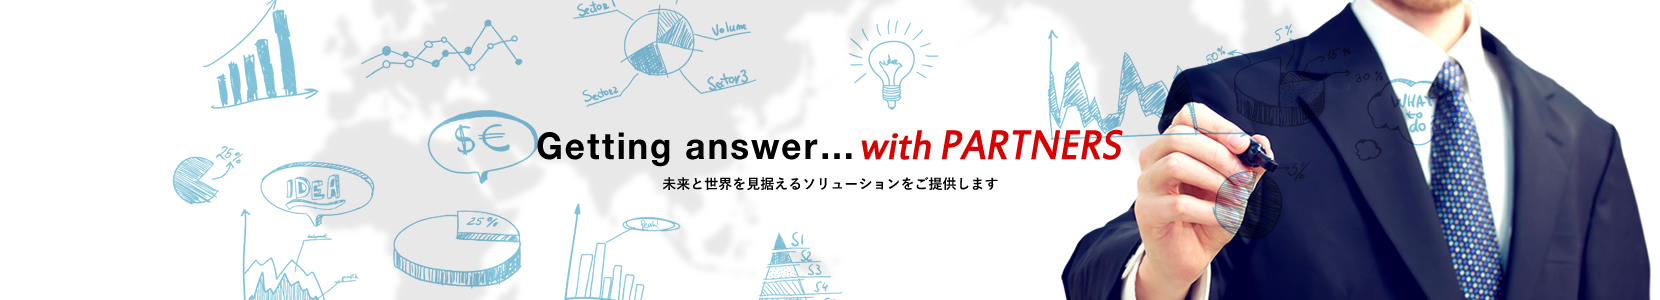 Getting answer...with PARTNERS 未来と世界を見据えるソリューションをご提供します|税理士法人 A.パートナーズ